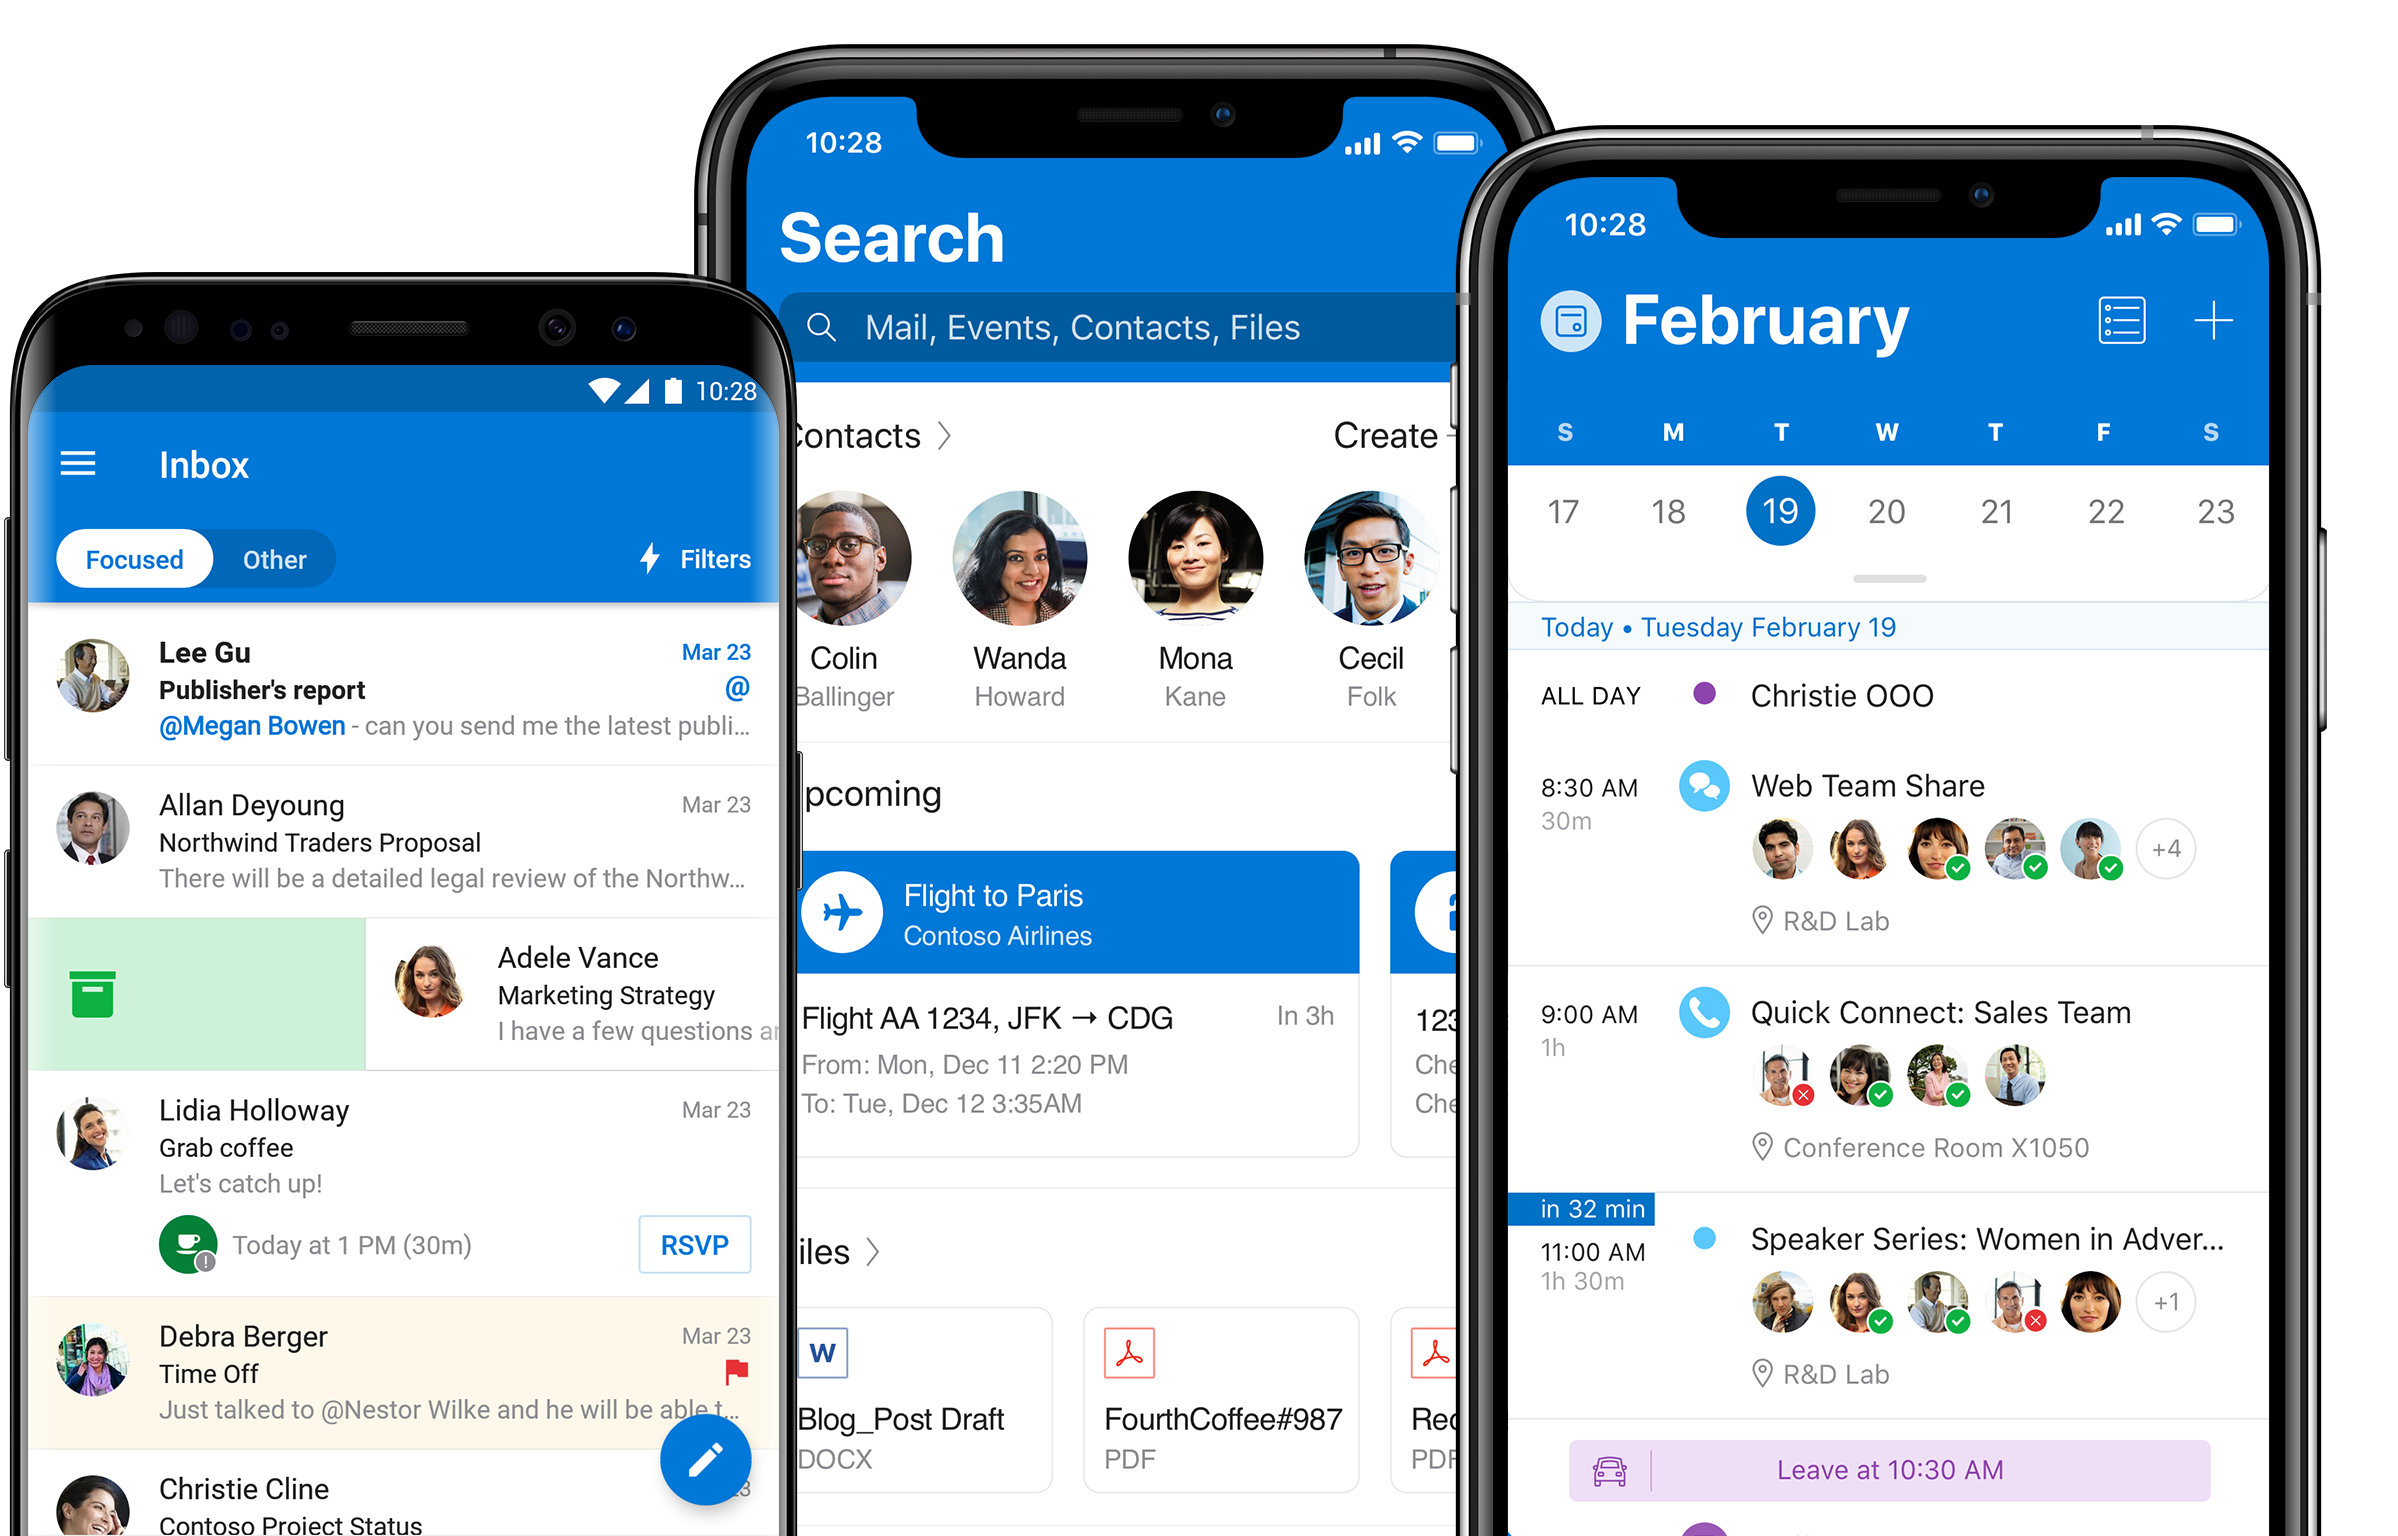 iPhone and Android phones displaying Outlook mobile email, calendar and search